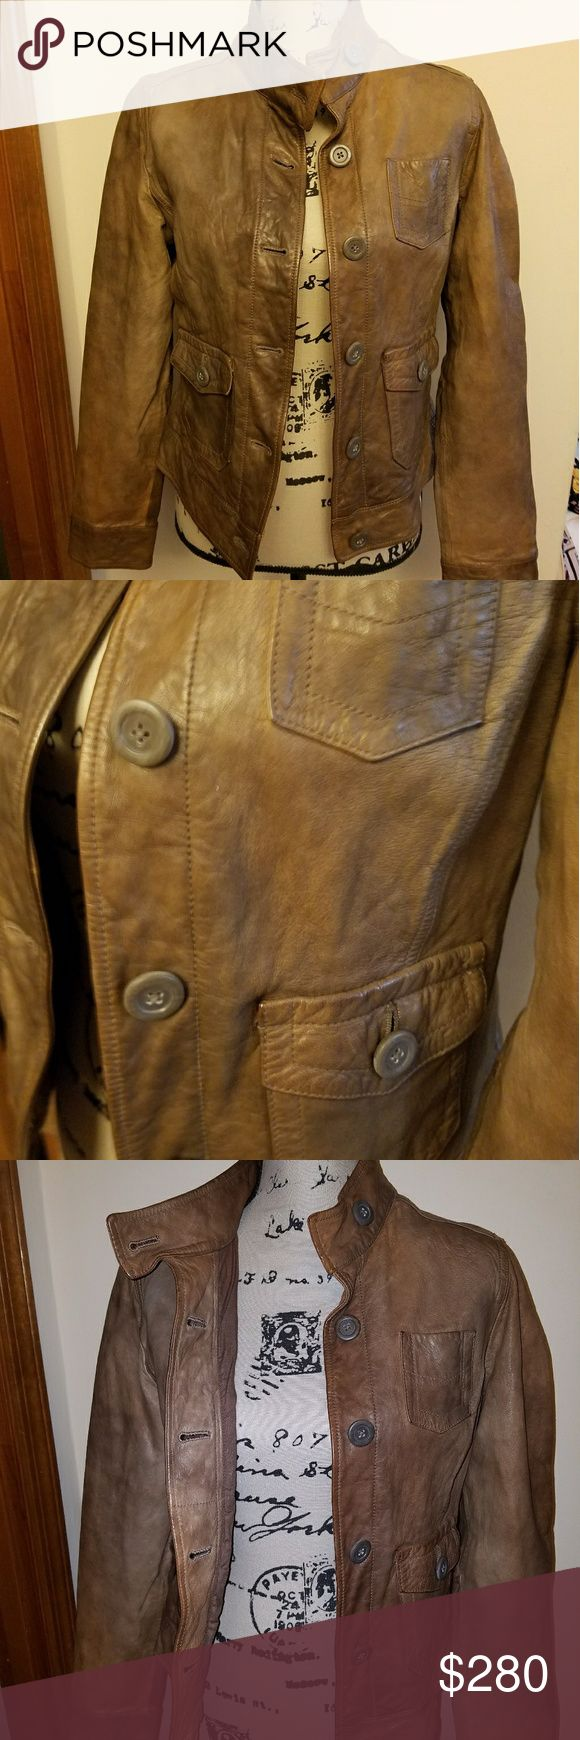 EUC Gap Leather Motorcycle Utility Jacket - Medium Amazing distressed brown leather jacket with button detail and several pockets. This jacket appears to have never been worn and NWOT, but since it is a re-posh (little too small for me) I will say EUC. I am crushed this jacket doesn't fit me but hope it works great for someone else. Past season, but leather jackets never go out of style. Perfect addition to any wardrobe/closet!! Offers welcome. Last picture is similar jacket for sale on…